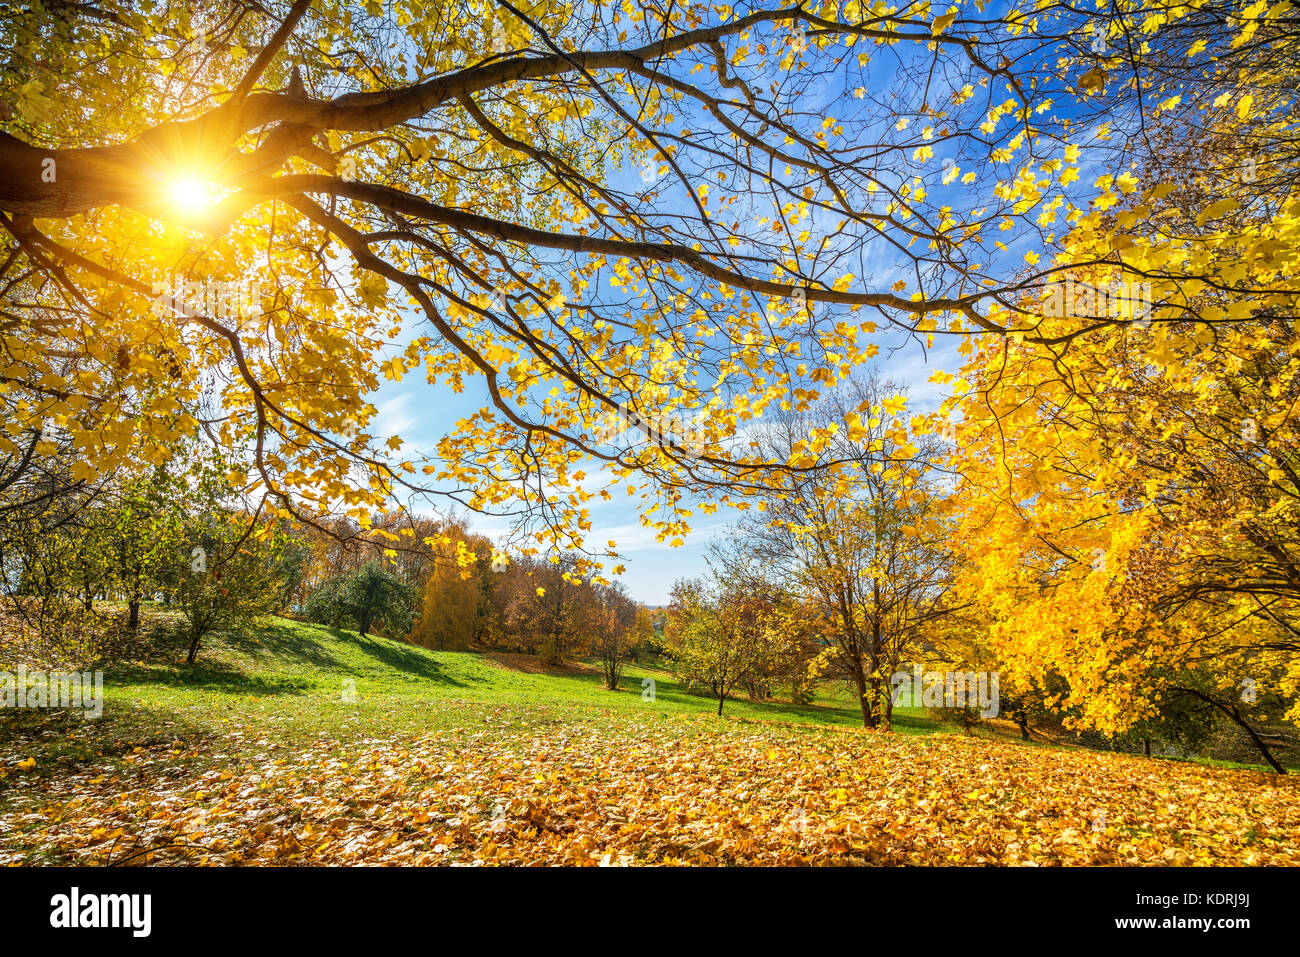 Sunny autumn in countryside - Stock Image